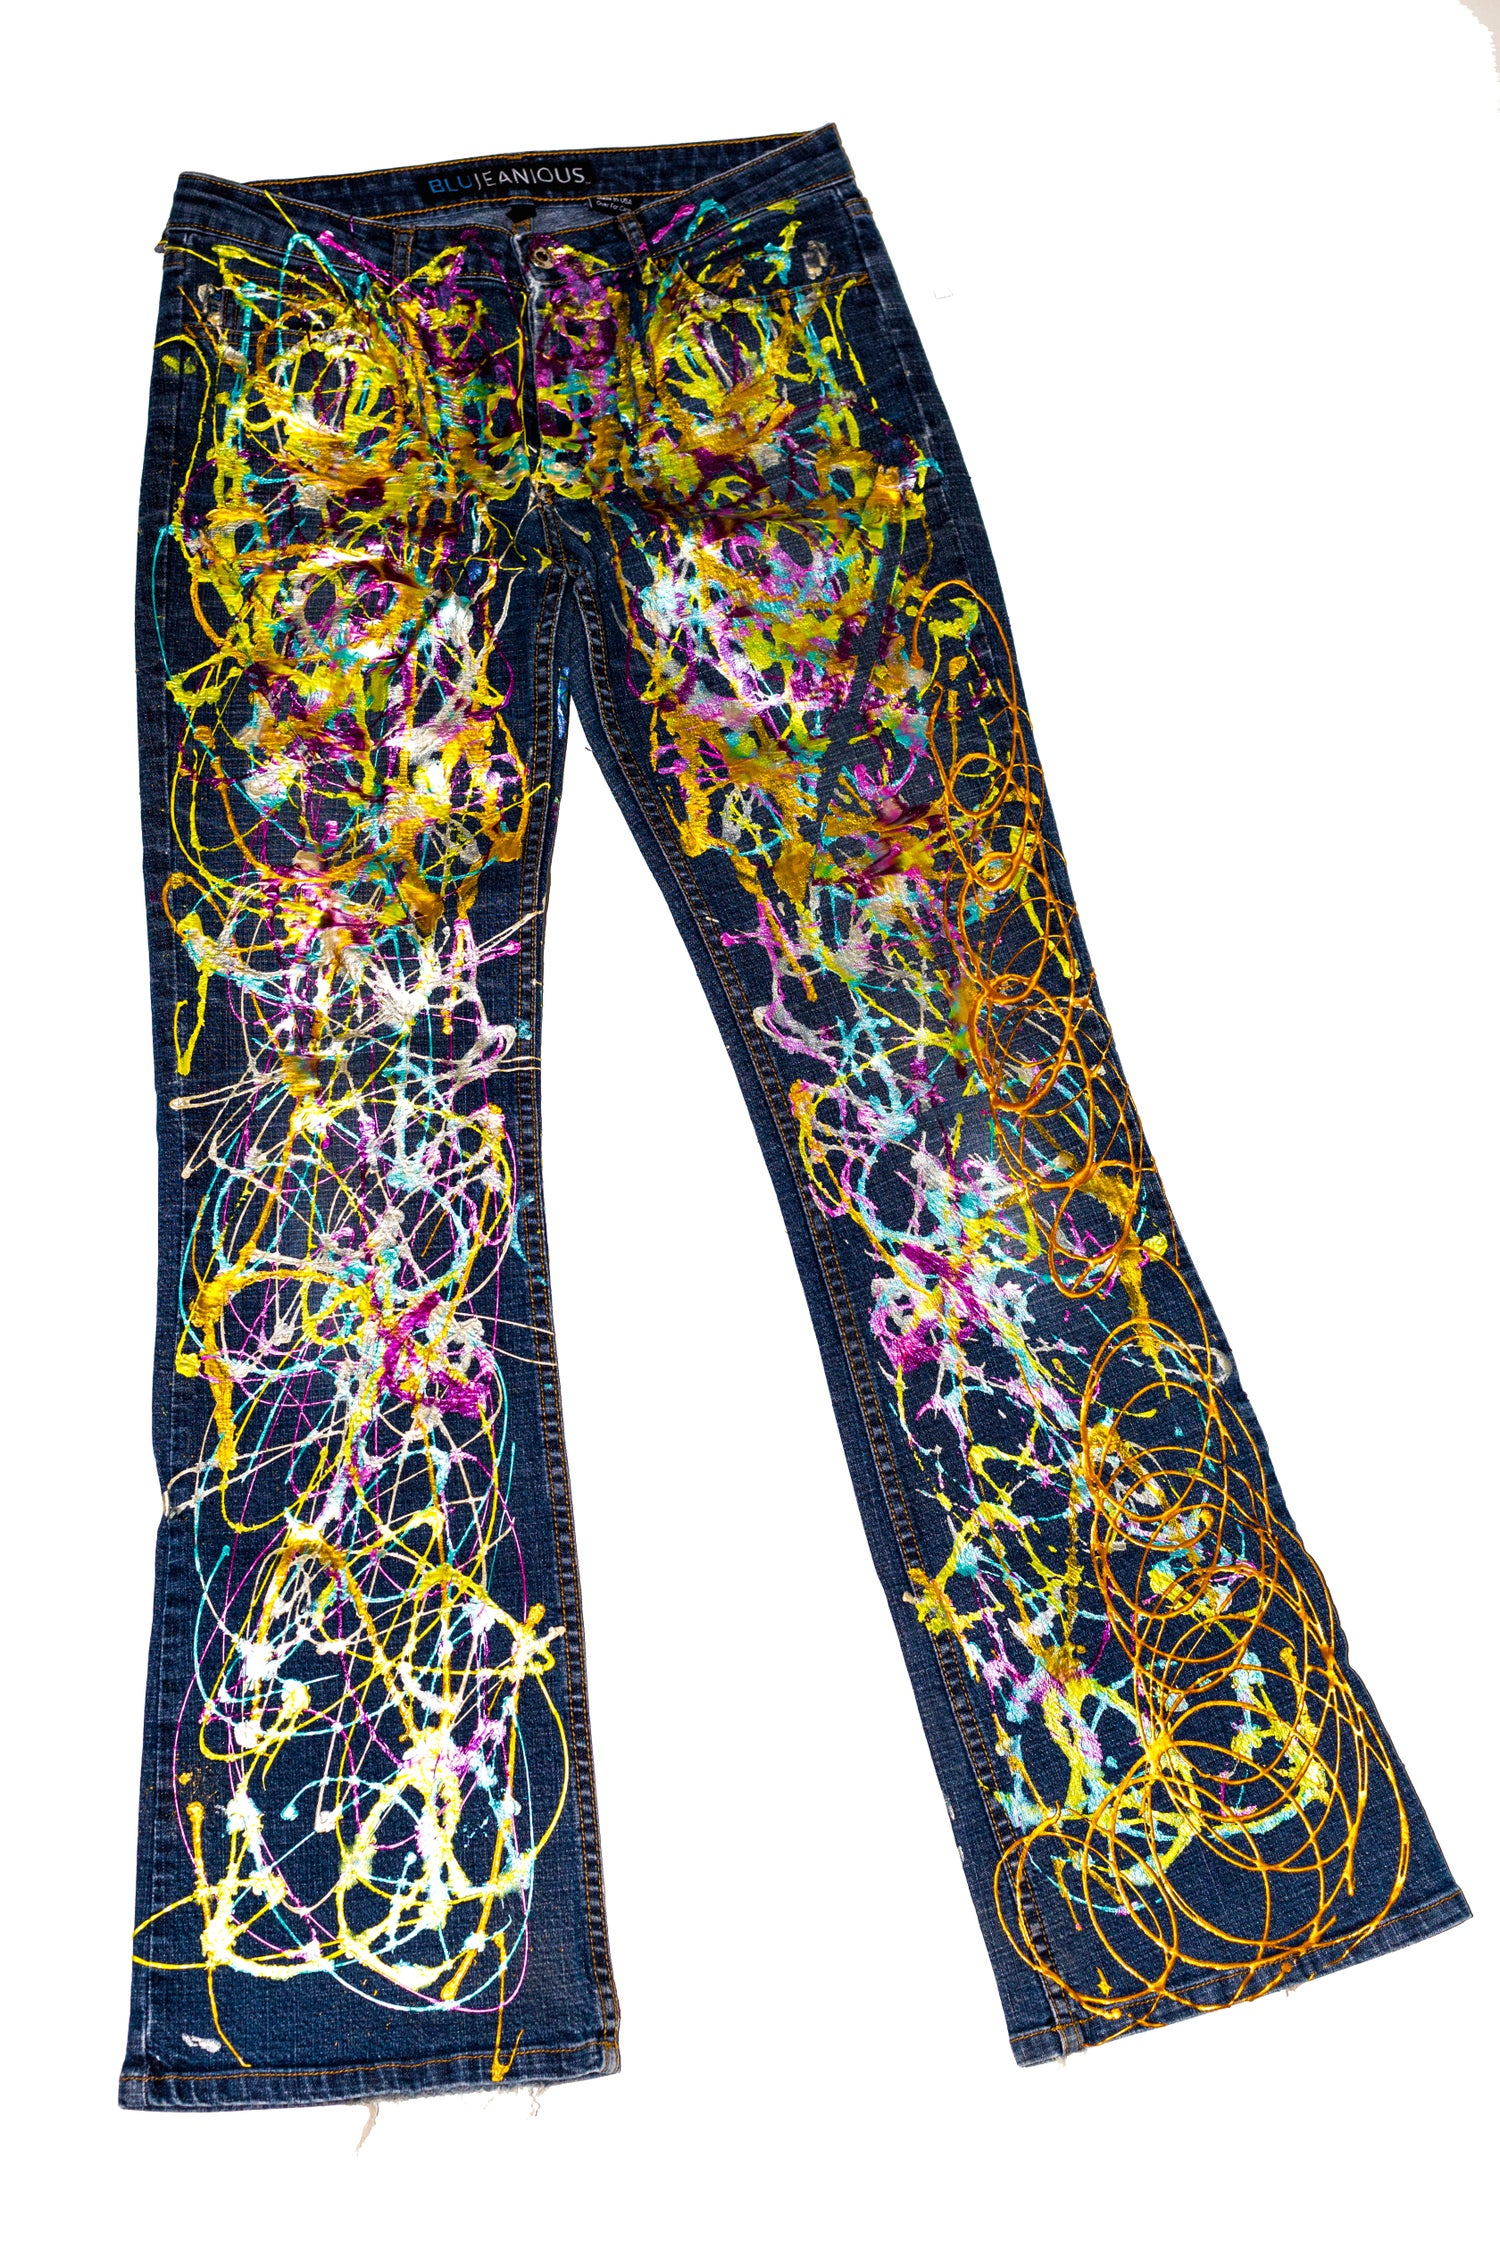 Image of Melissa Errico's Jeans For Refugees